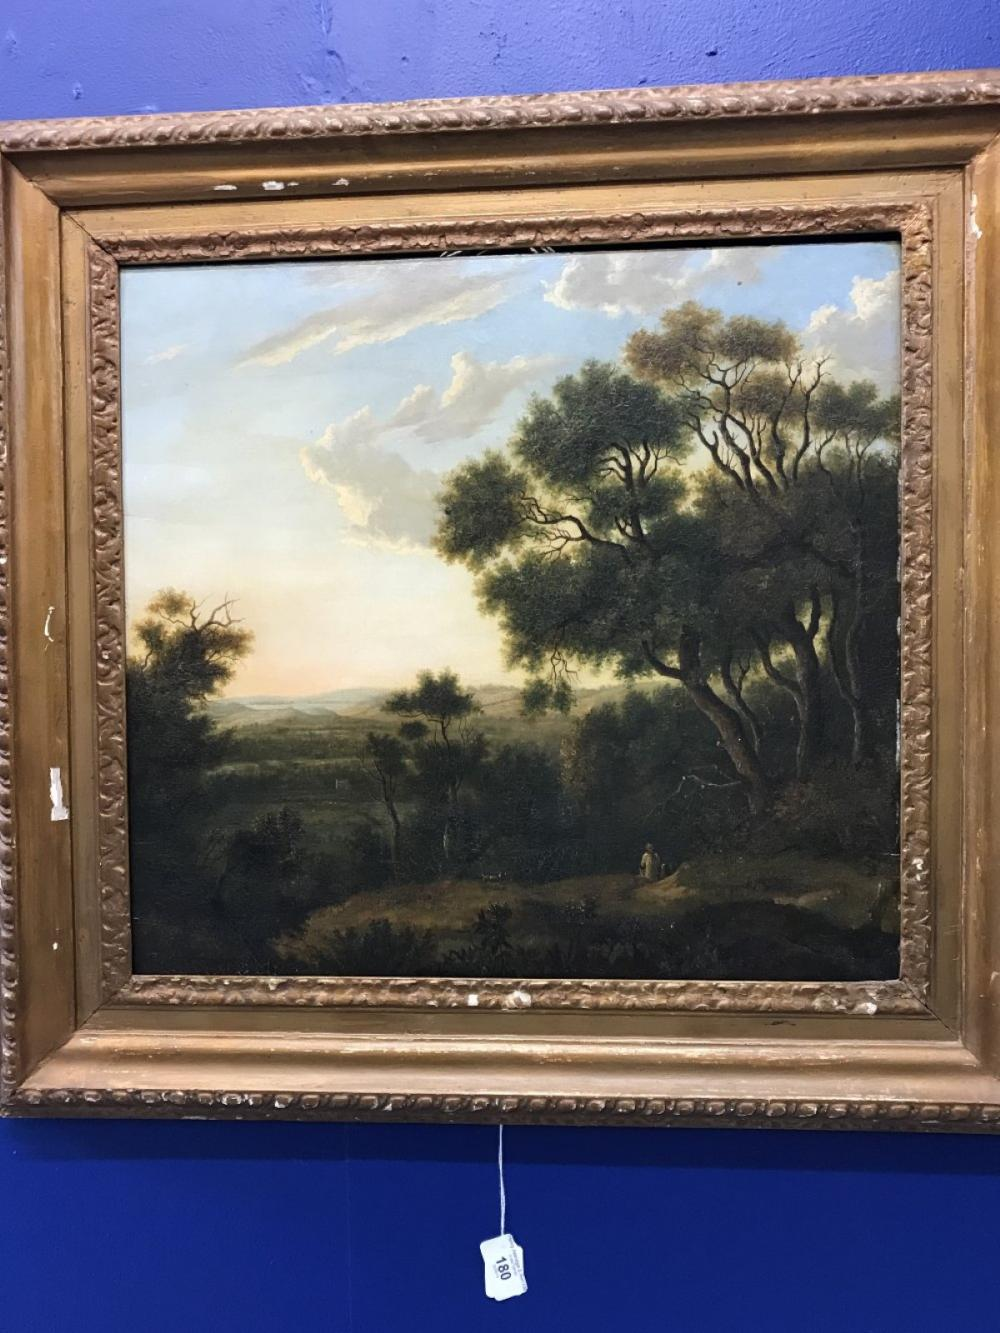 Patrick Nasmyth 1787 - 1831: Oil on panel, landscape study, with trees and figures. Framed 18ins. x